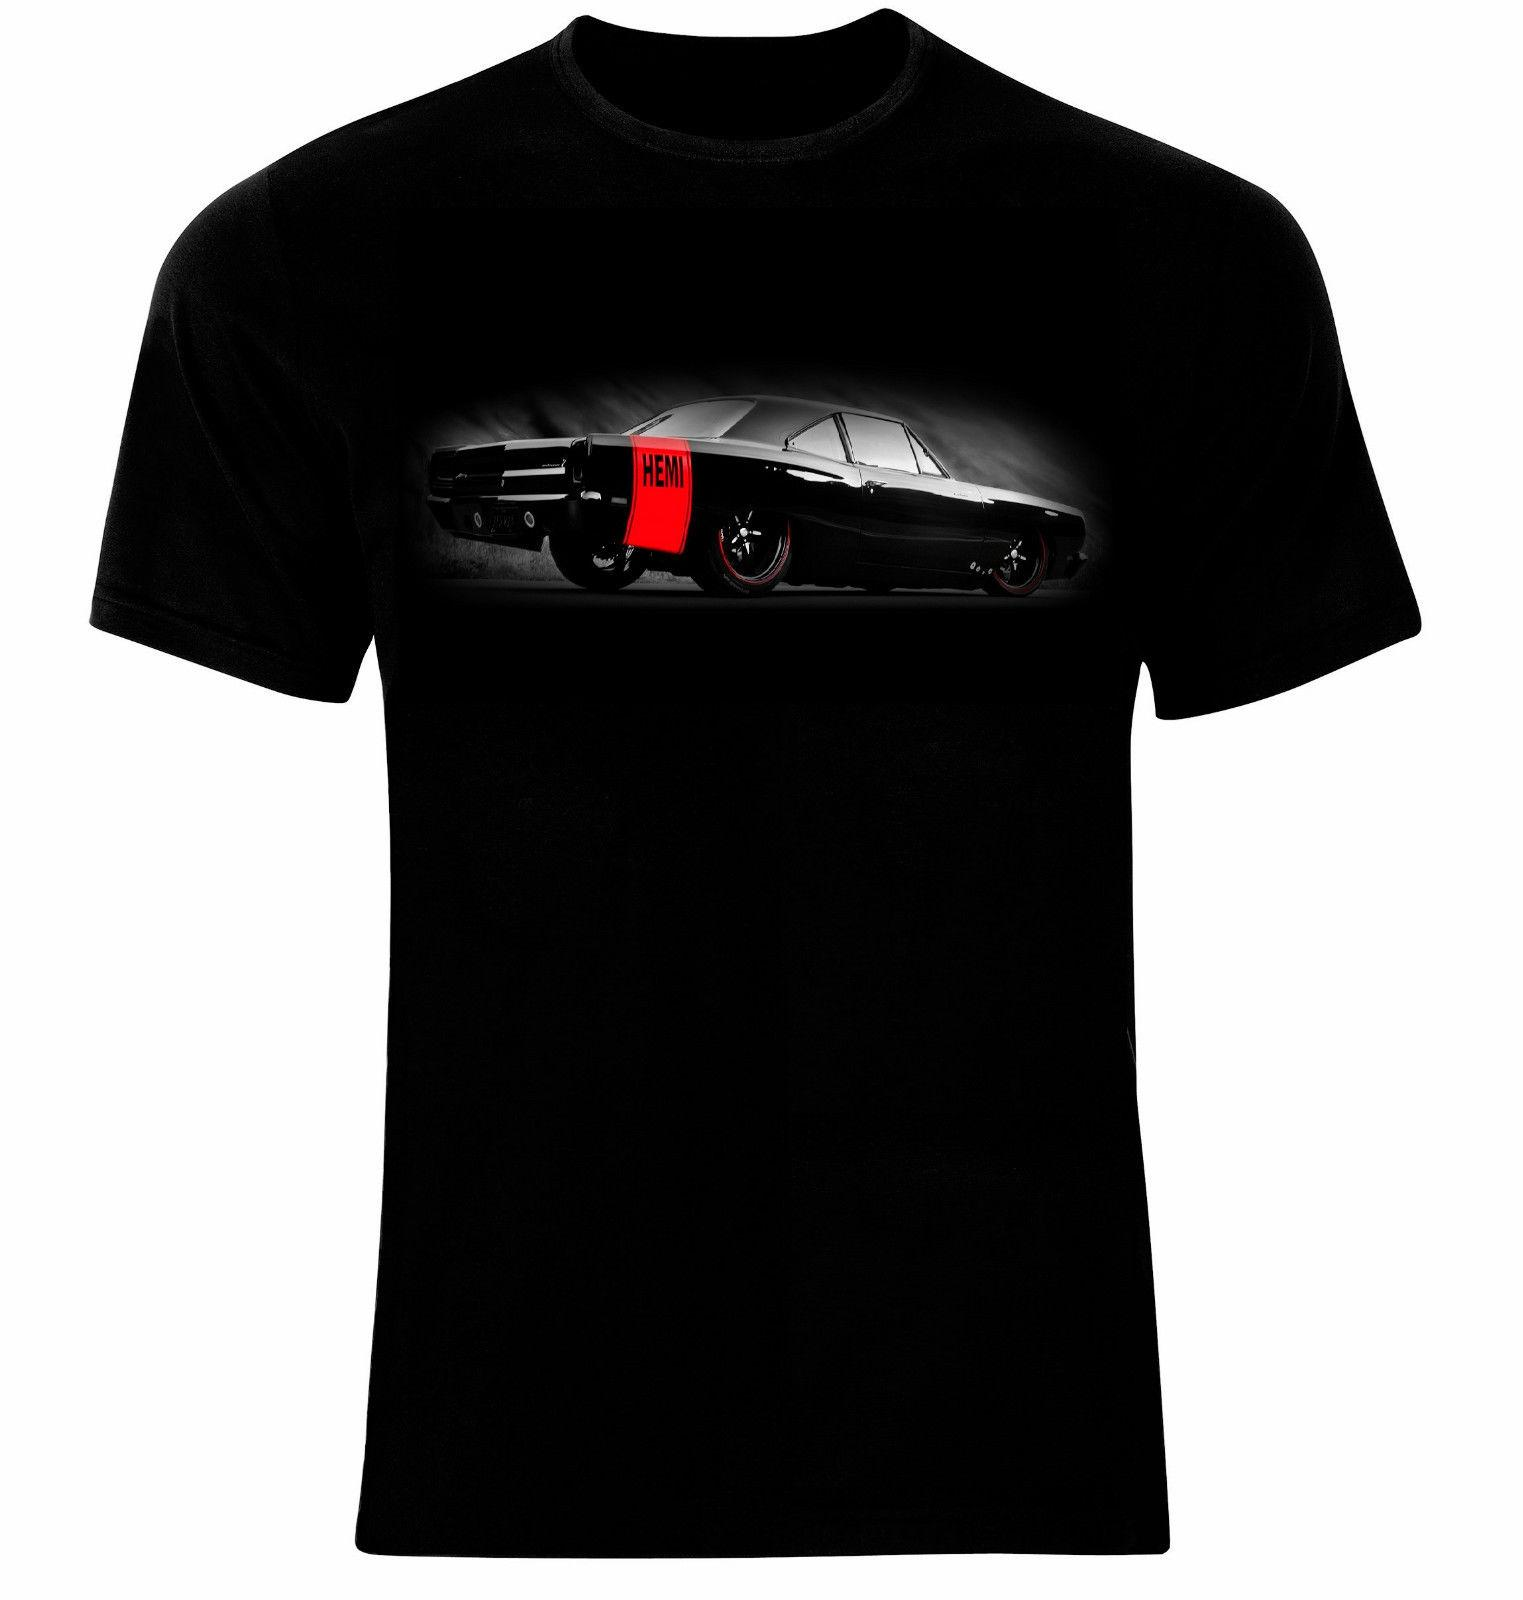 Hemi Dodge Charger American Muscle Car Manner Printed T Shirt All